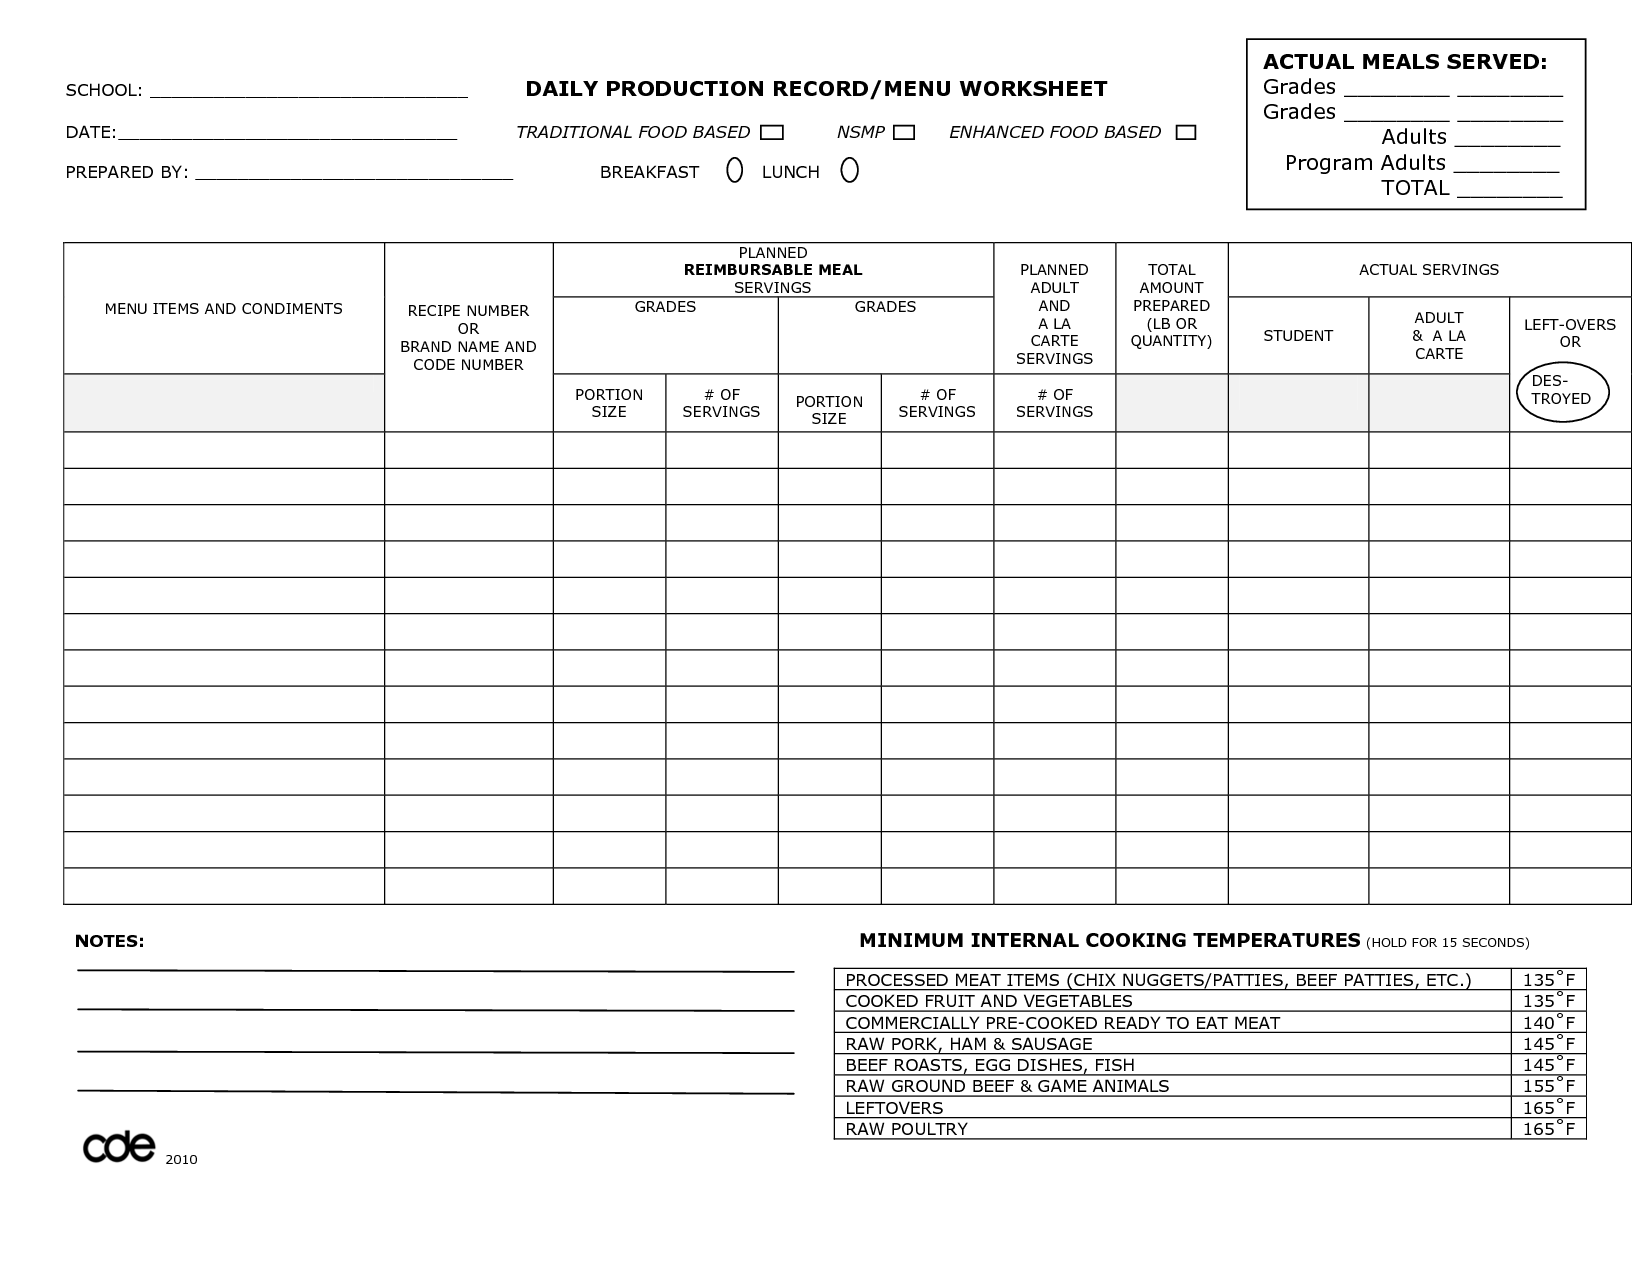 Daily Meals Worksheet